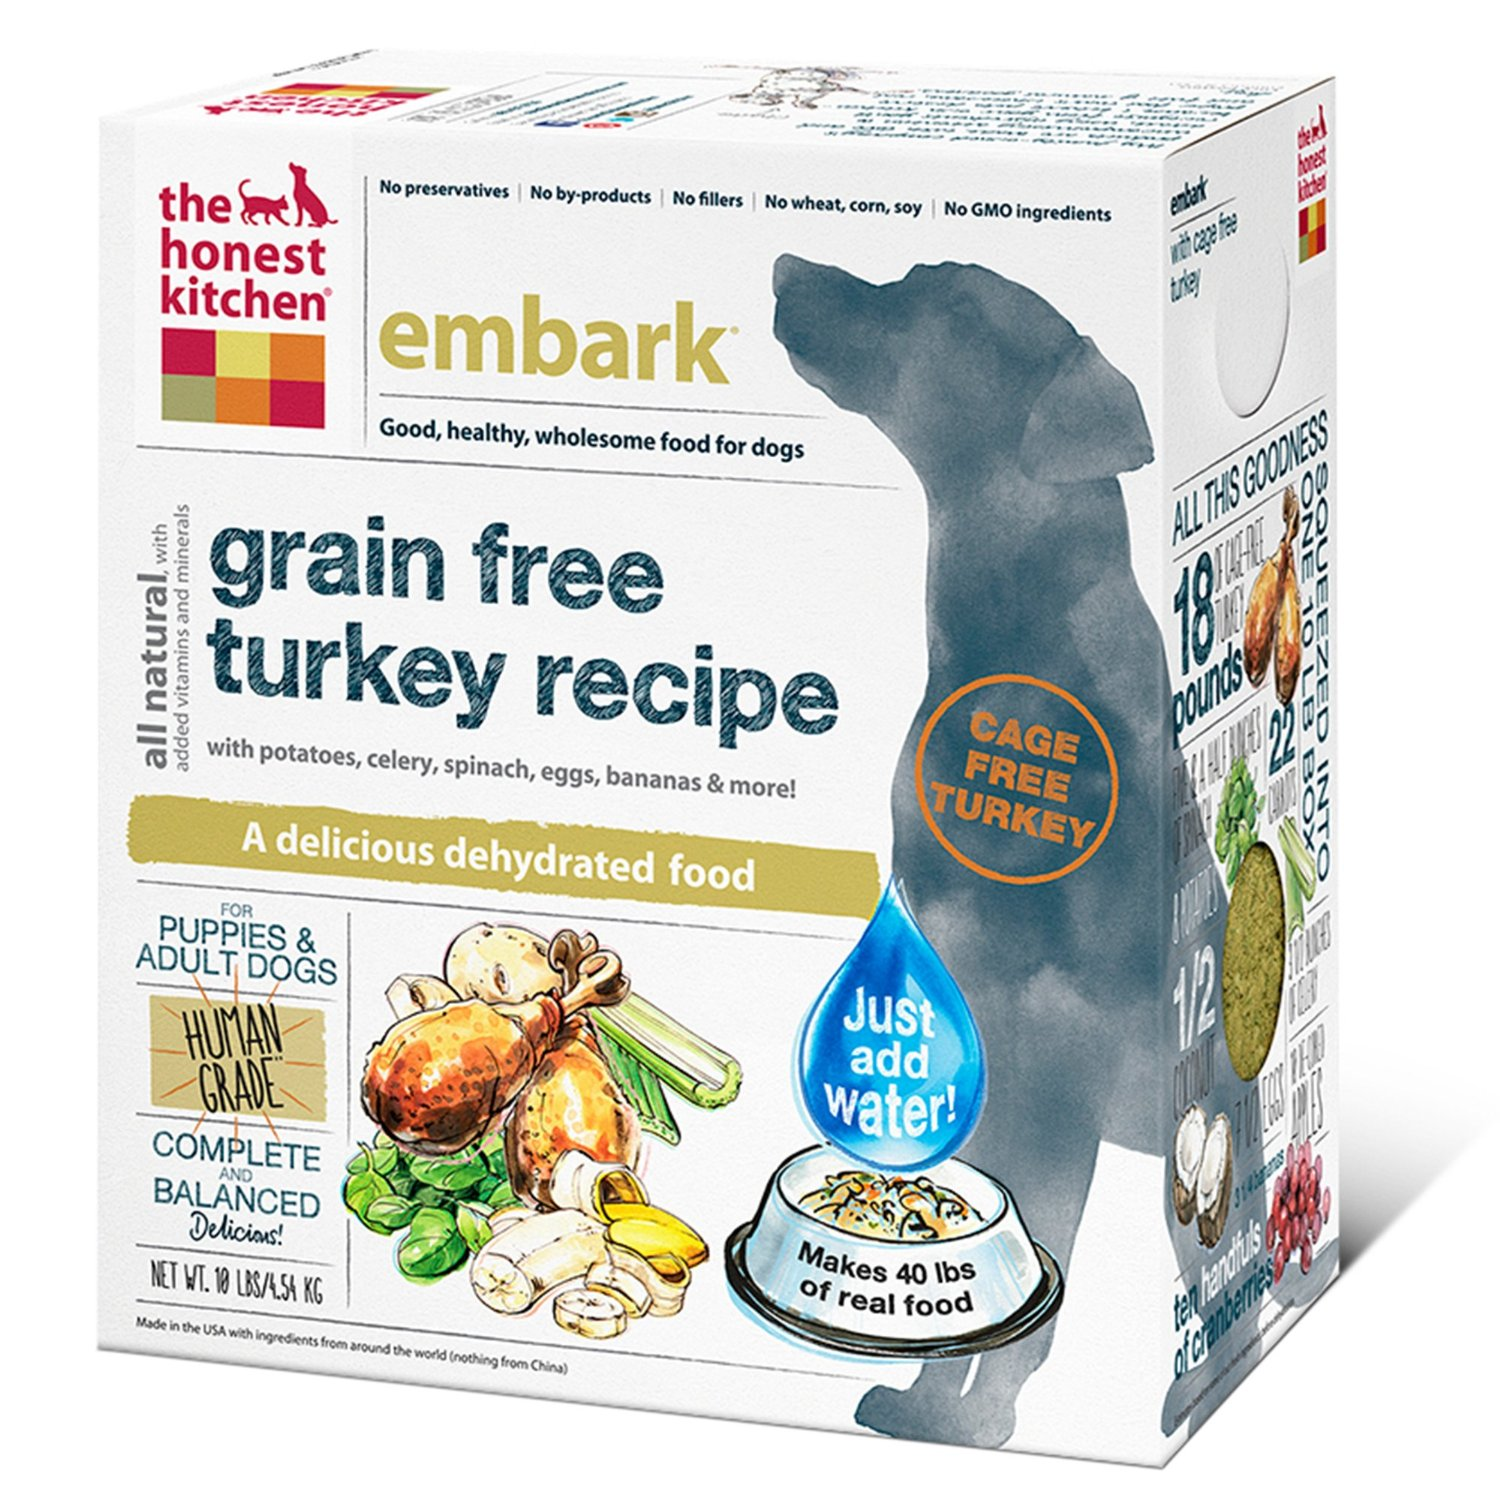 The Honest Kitchen Embark Dehydrated Dog Food 1z sample